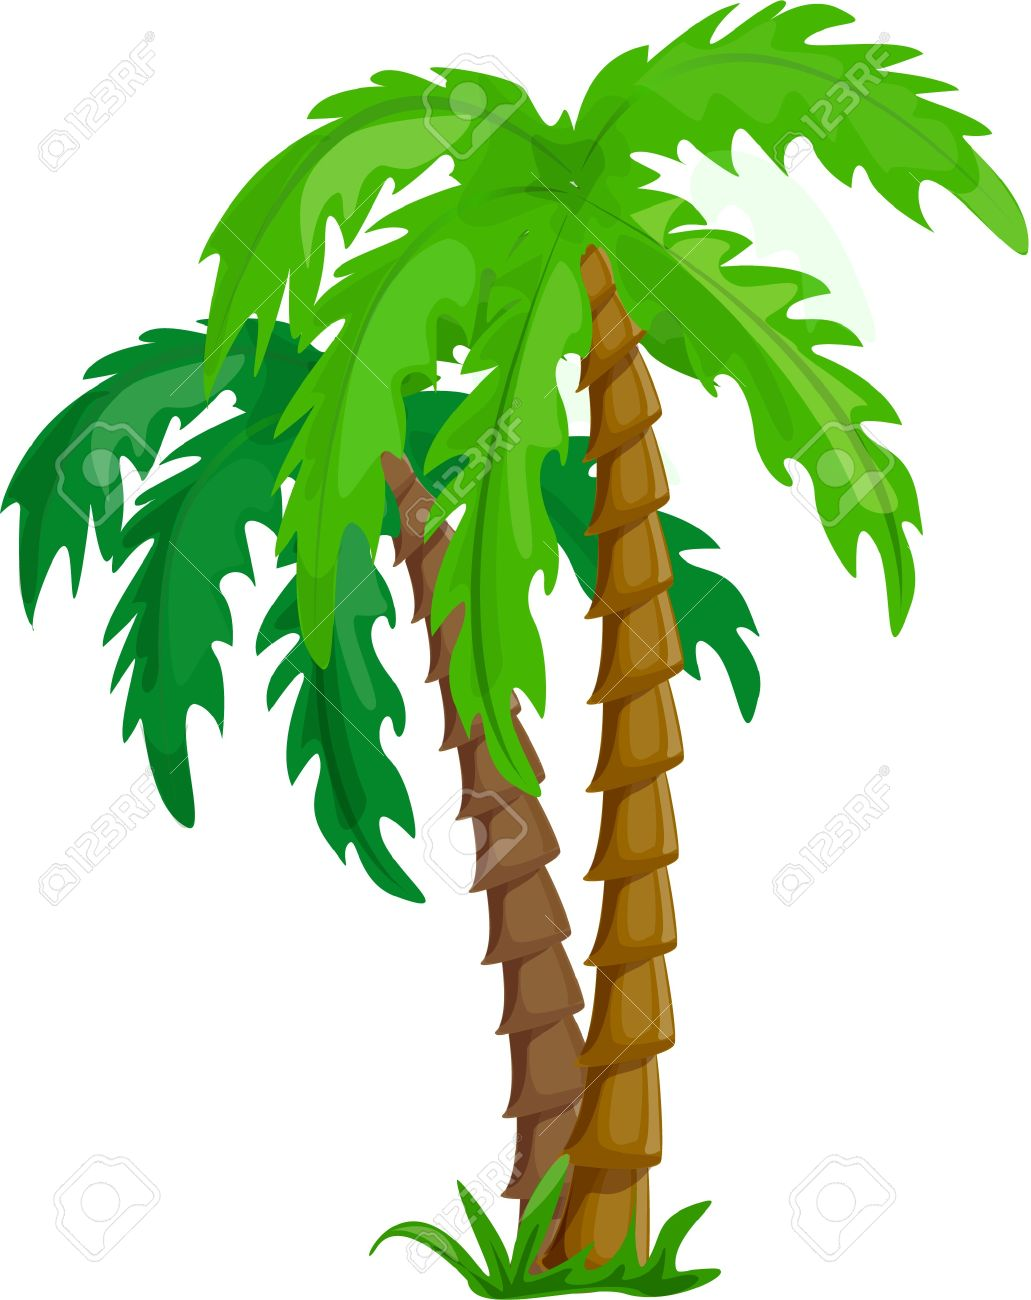 vector tropical palm trees isolated on white royalty free cliparts rh 123rf com vector trees silhouettes vector trees silhouettes